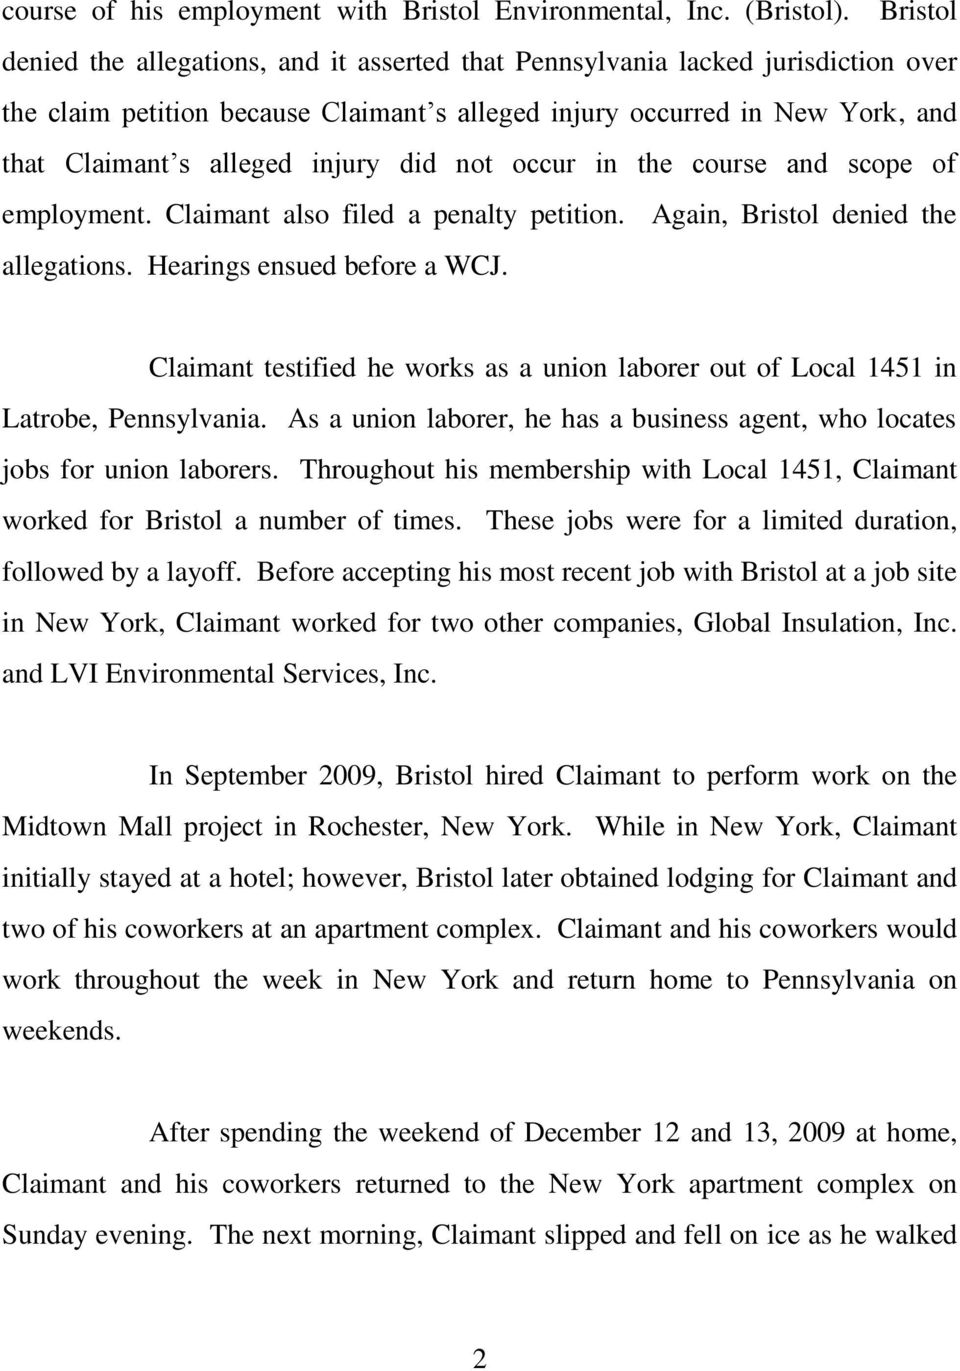 injury did not occur in the course and scope of employment. Claimant also filed a penalty petition. Again, Bristol denied the allegations. Hearings ensued before a WCJ.